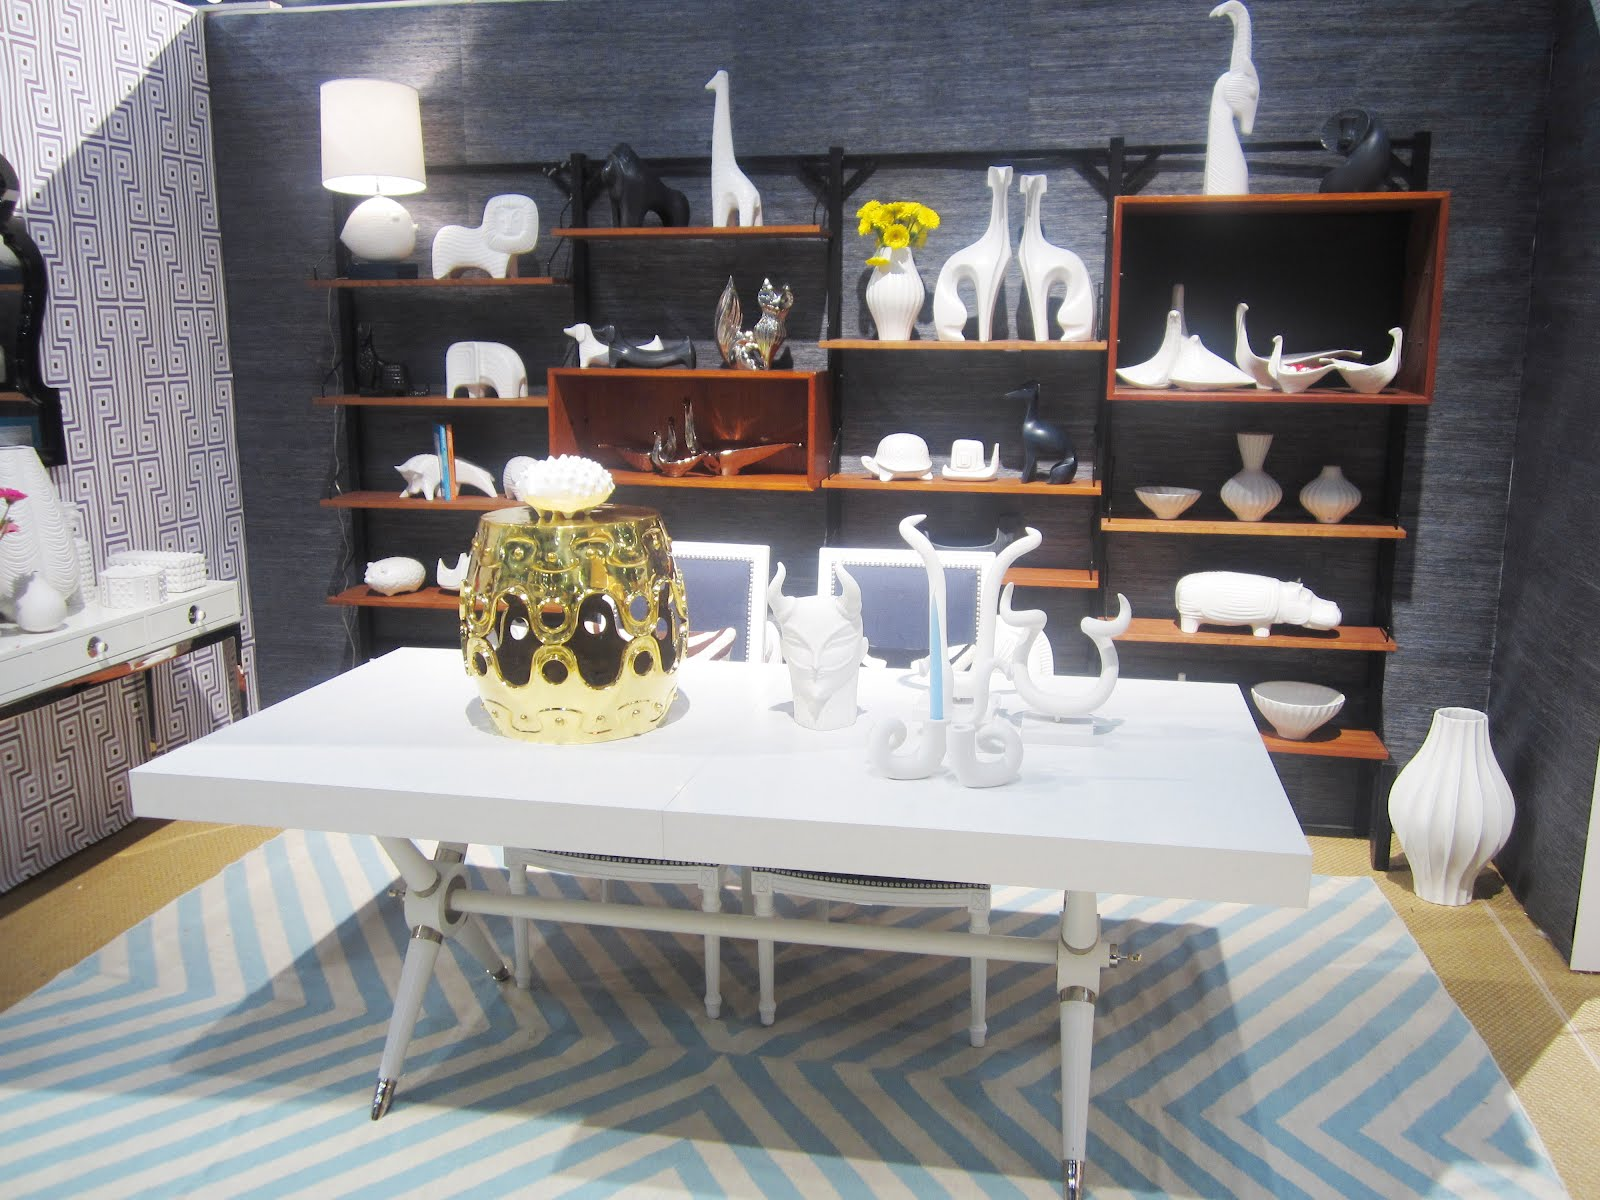 COCOCOZY: THE LATEST FROM MY DESIGN CRUSH JONATHAN ADLER & WHAT